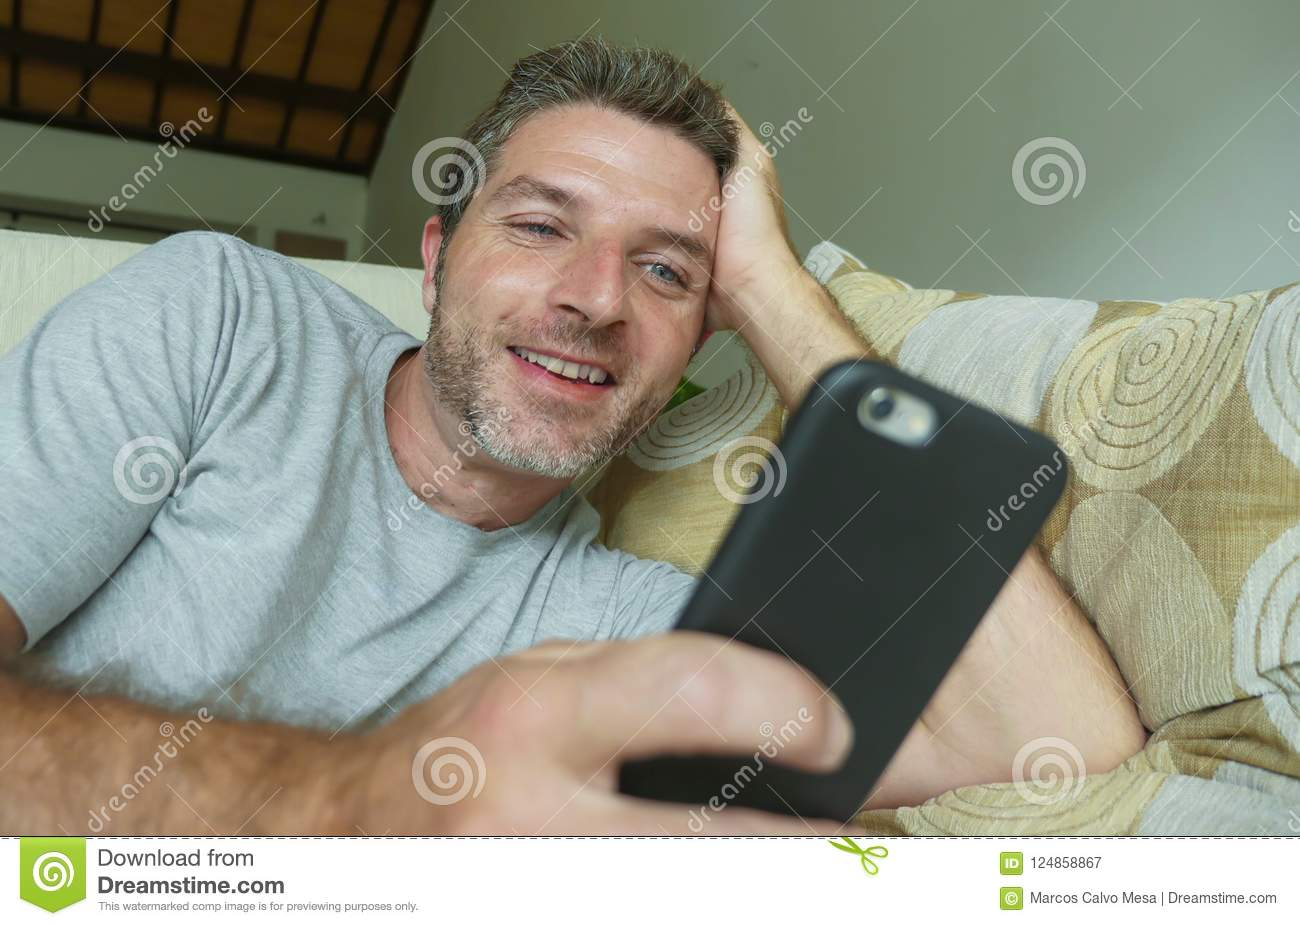 Lifestyle indoors portrait of young happy and attractive man at home sofa couch using internet social media app on mobile phone ne